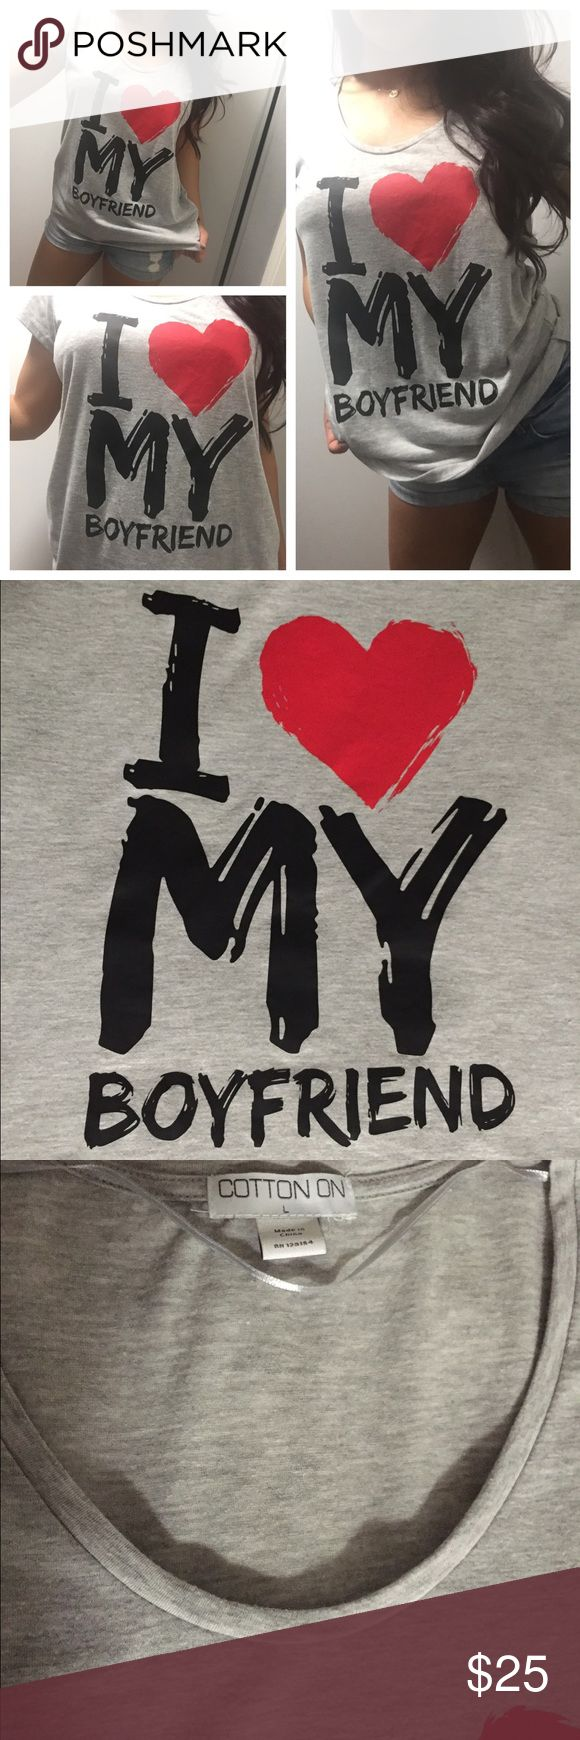 """""""I ❤️ MY BOYFRIEND"""" Custom made shirt """"I ❤️ MY BOYFRIEND"""" Custom made shirt by me Shirt bought from Cotton On $15 Custom designed and screen printed $40 Made it on a Large t-shirt so it can be worn loose Sizes S-M-L can all wear it depending on how you want to dress it up.  Brand New   My sizes: Small 34-27-36 Cotton On Tops Tees - Short Sleeve"""